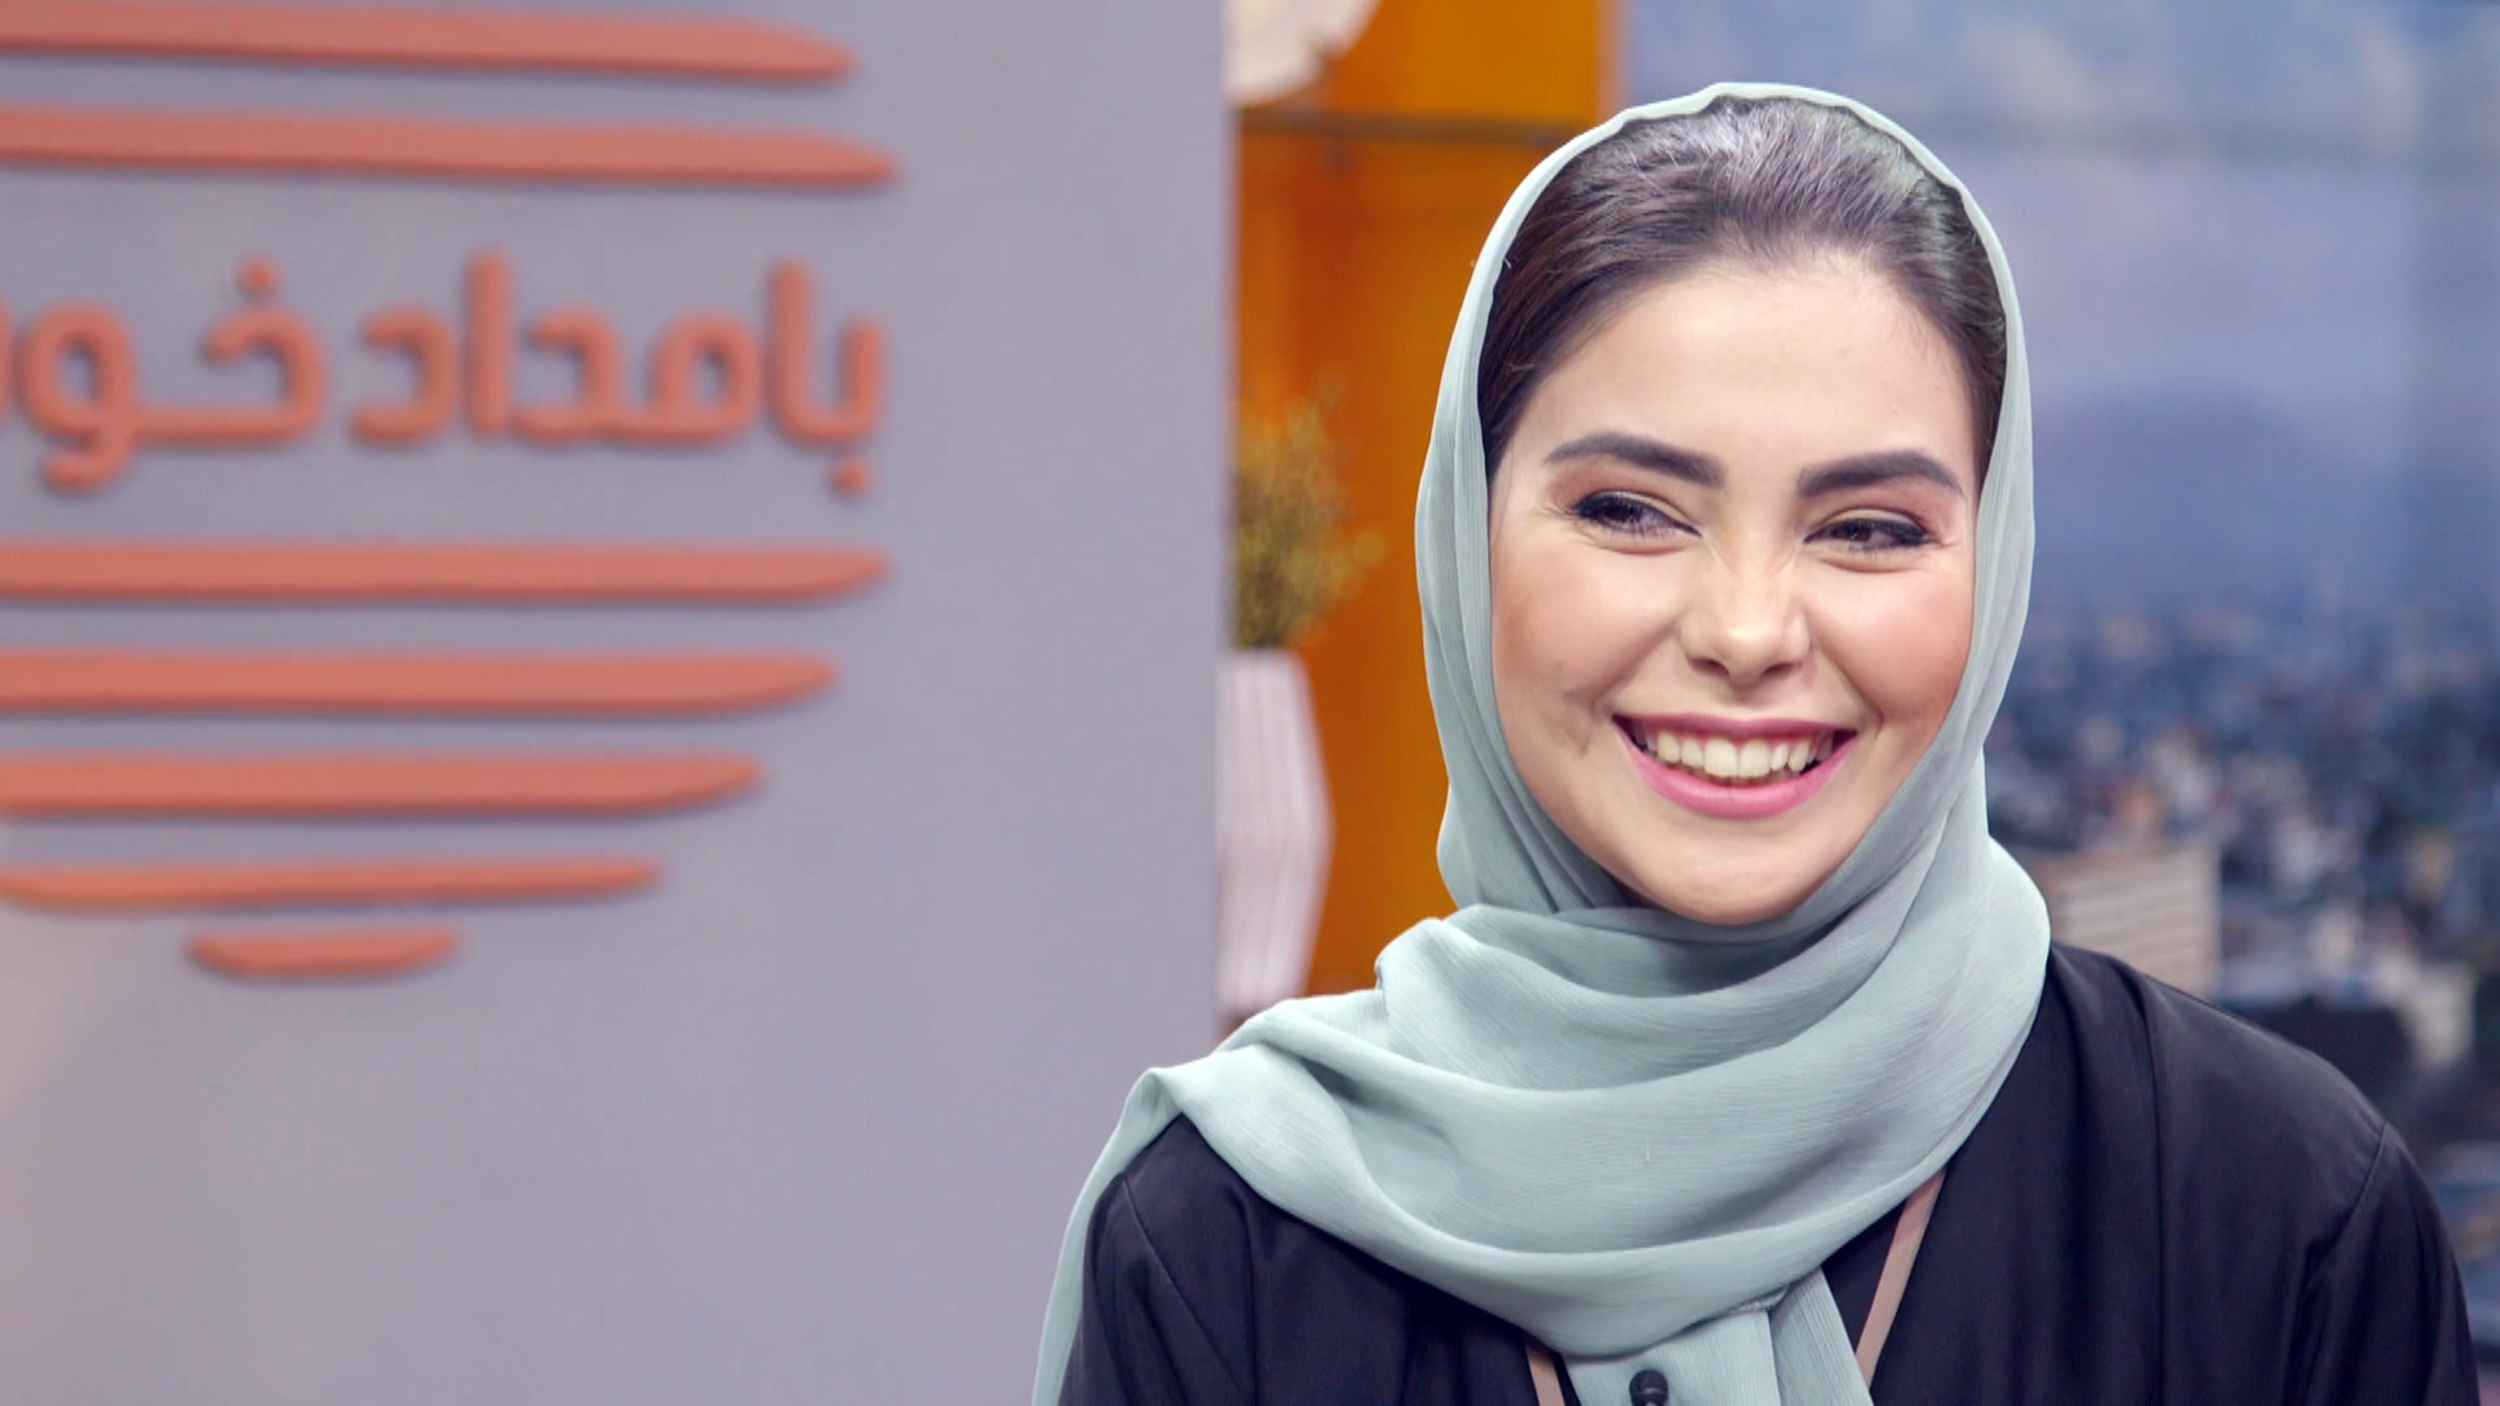 She hosts a morning show in Afghanistan. What her career looks like under Taliban rule.